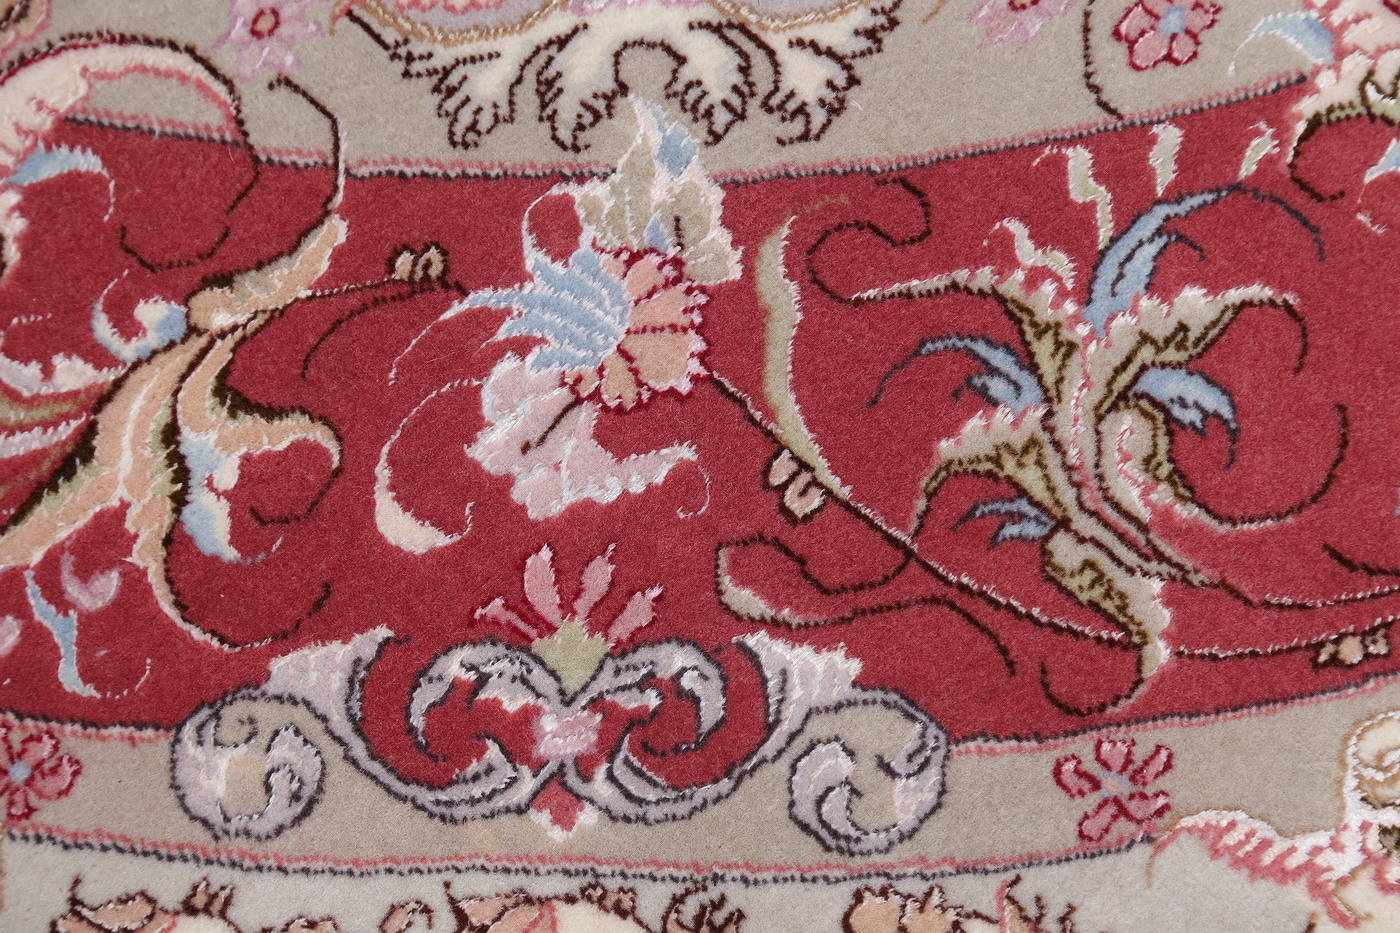 Ivory Floral Tabriz Persian Oval Area Rug 7x10 image 11